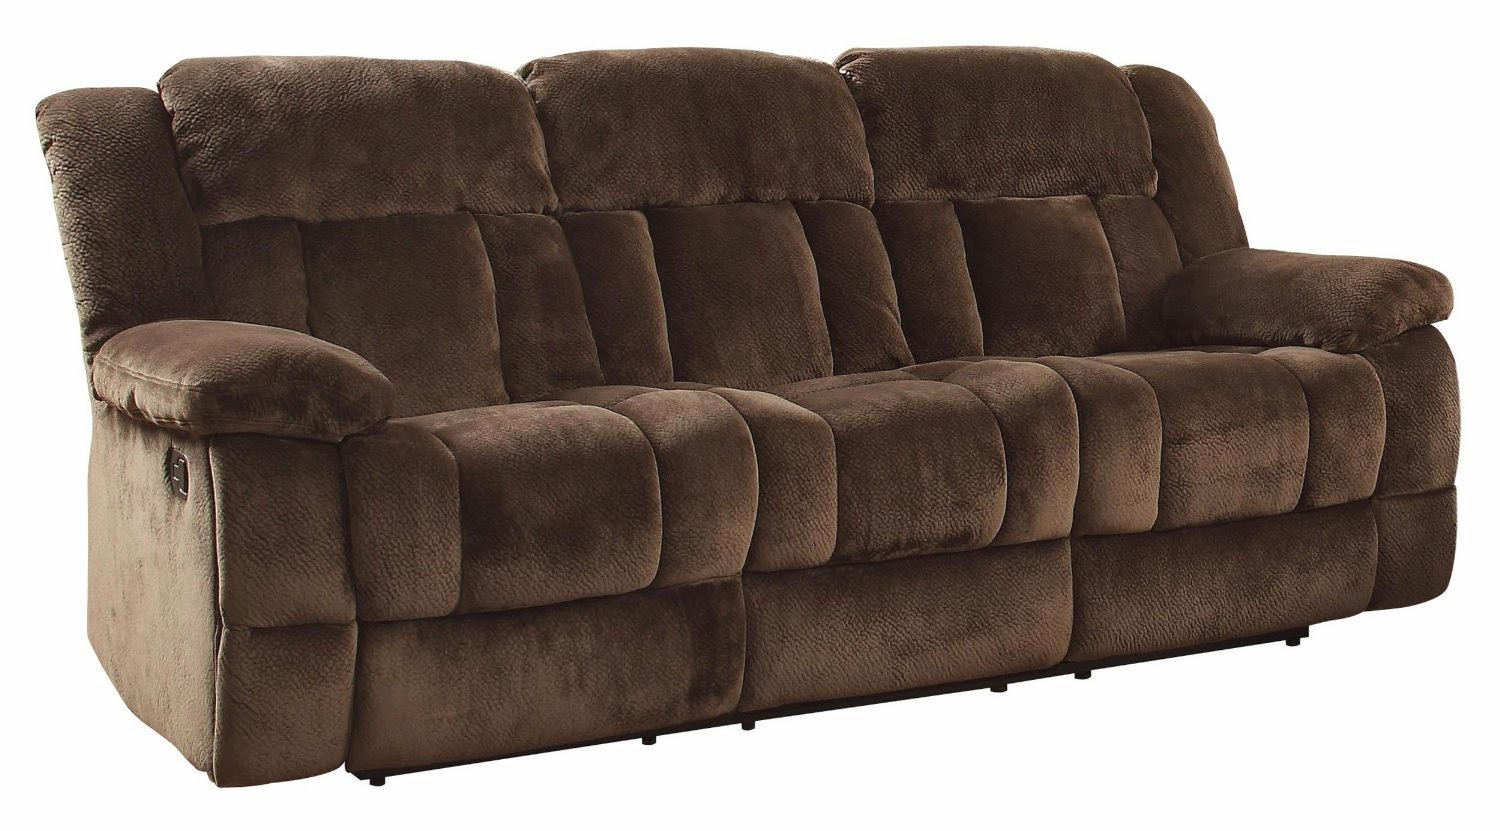 3pc Recliner Sofa Set Sectional Sleeper Vancouver Cheap Reclining Sofas Sale: Fabric Sale